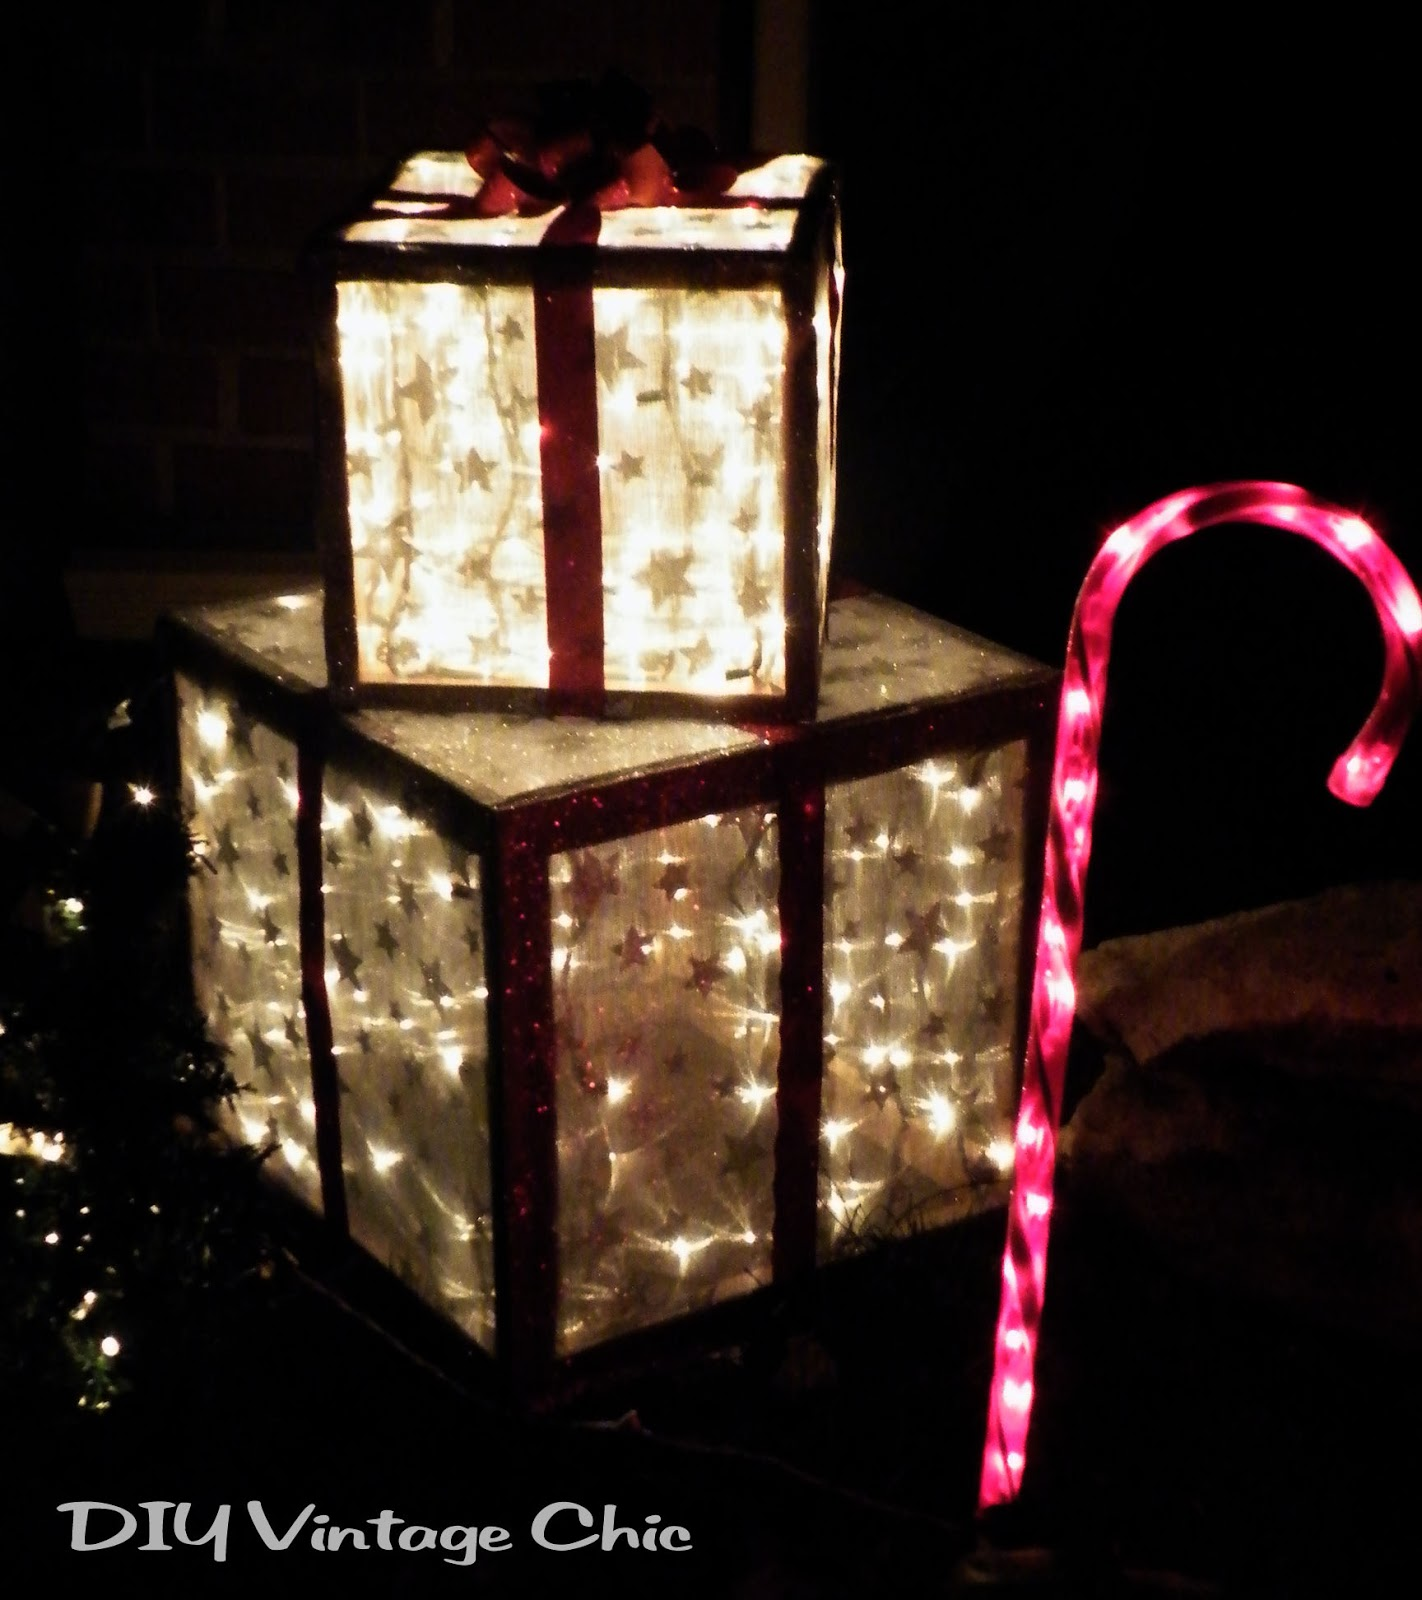 DIY Vintage Chic: How To Make Lighted Christmas Presents